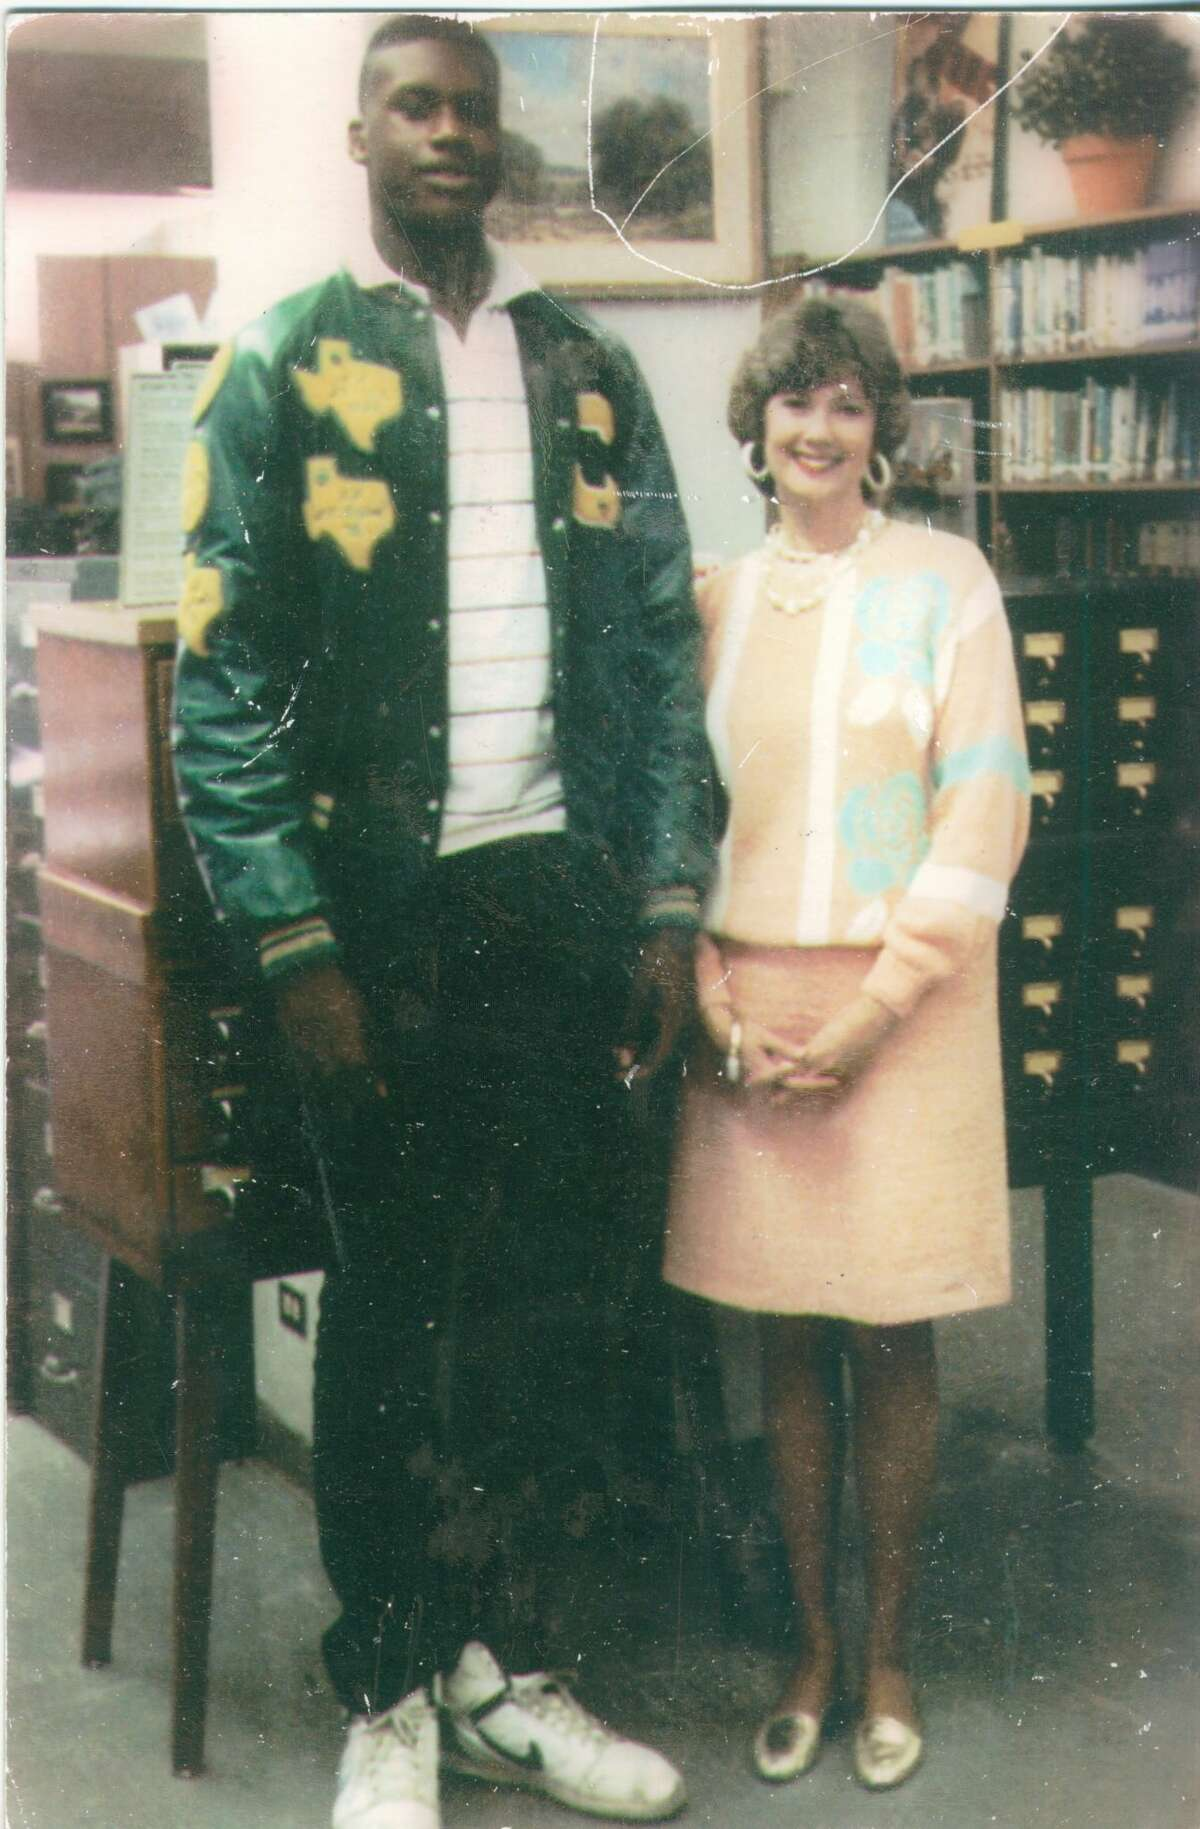 In 1989, shortly after the Cole High School boys basketball team posted a 36-0 record and won the 3A State Championship, Shaquille O'Neal posed with librarian Sandee Mewhinney.